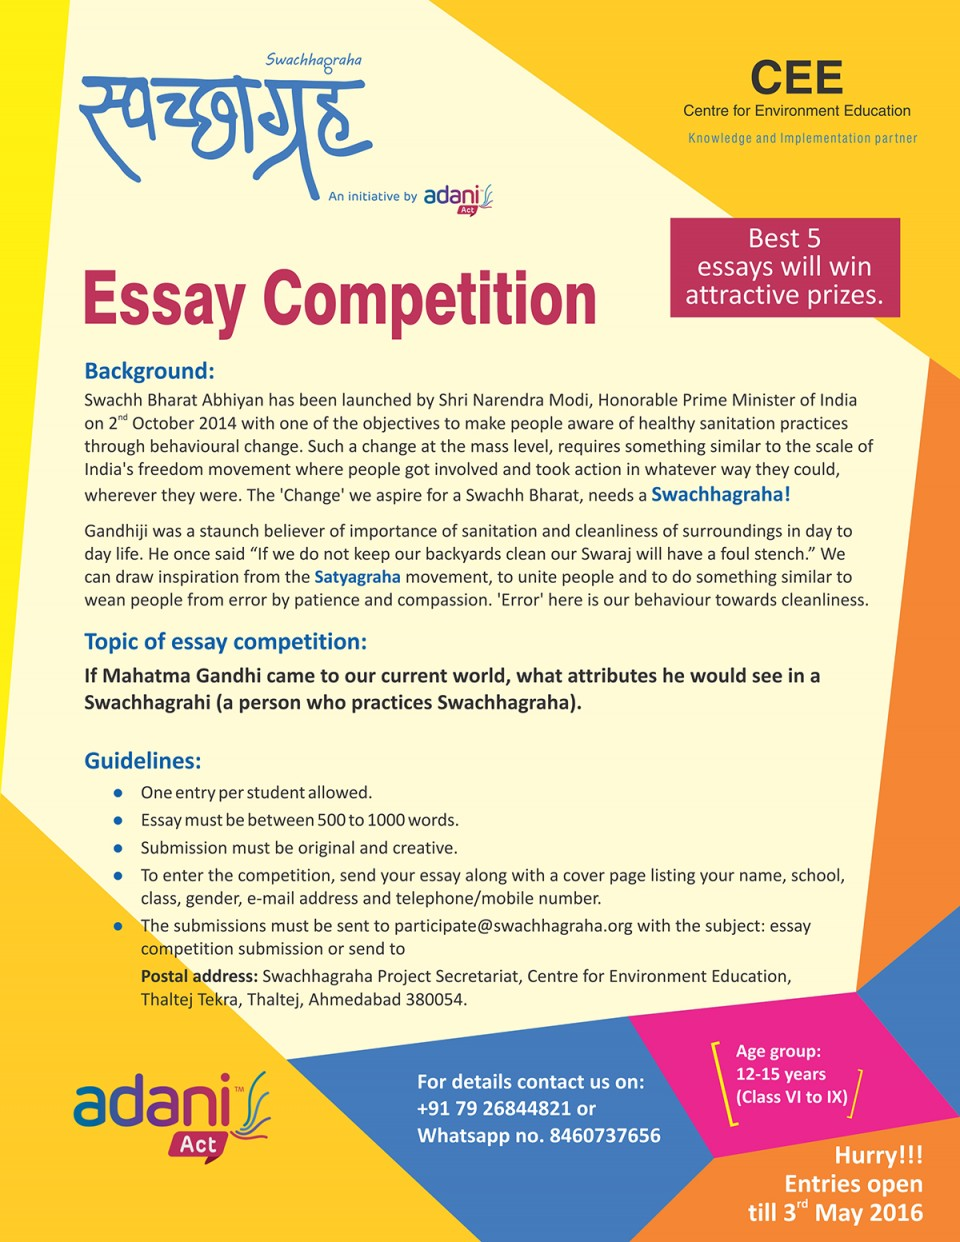 011 20180129171946essay20competition Essay About Cleanliness In School Phenomenal On Toilet And Its Surrounding 960